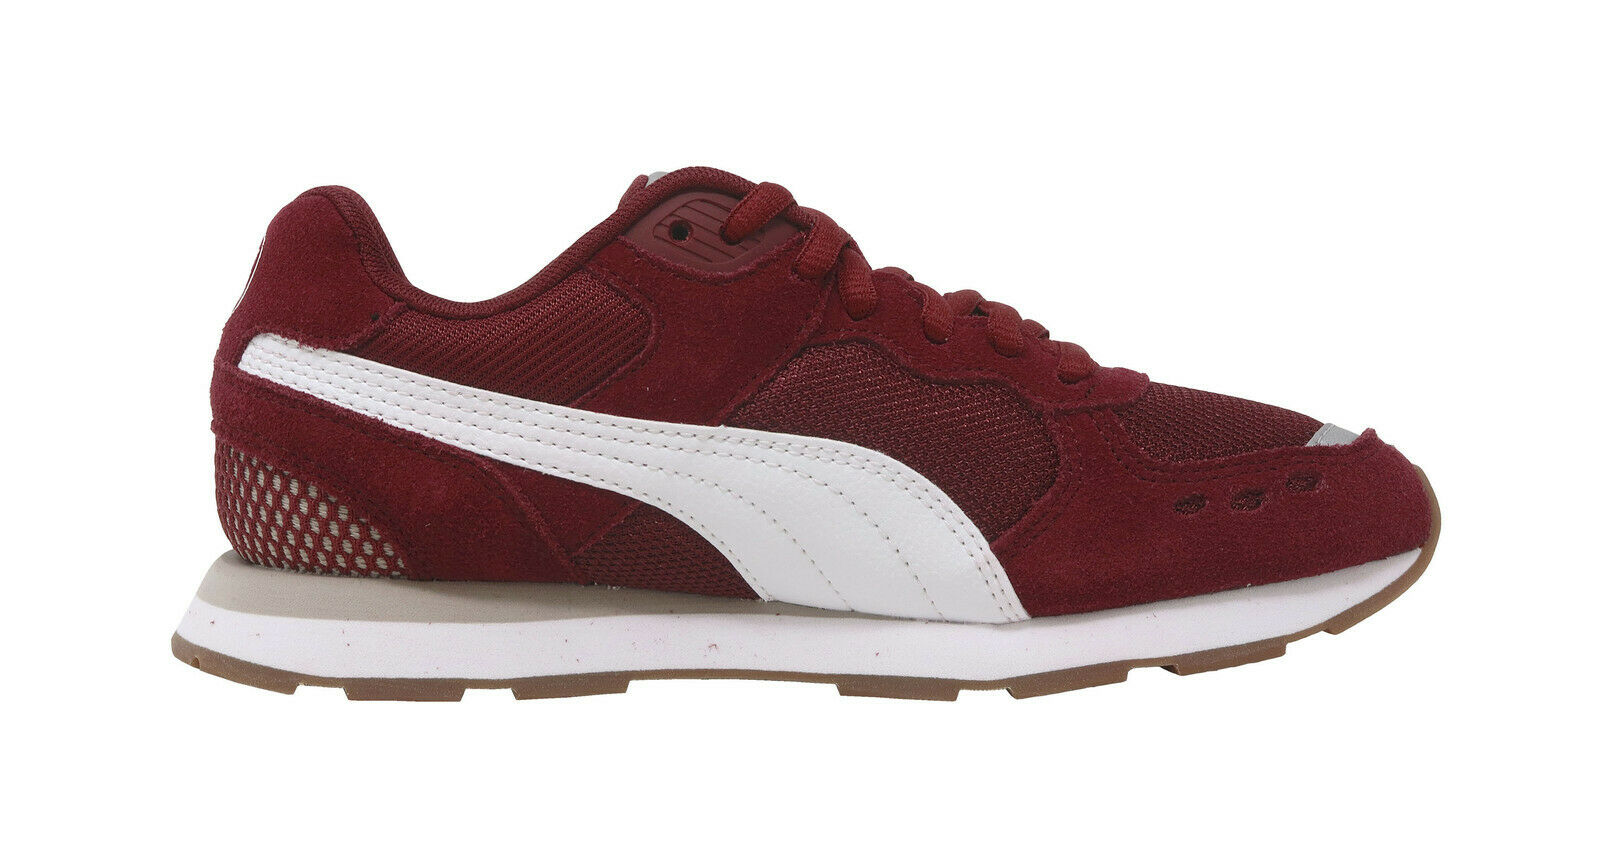 PUMA Vista JR Mesh Mesh Mesh Suede Cordovan Burgundy rouge Lace up baskets Kids Youth chaussures 8d96c6